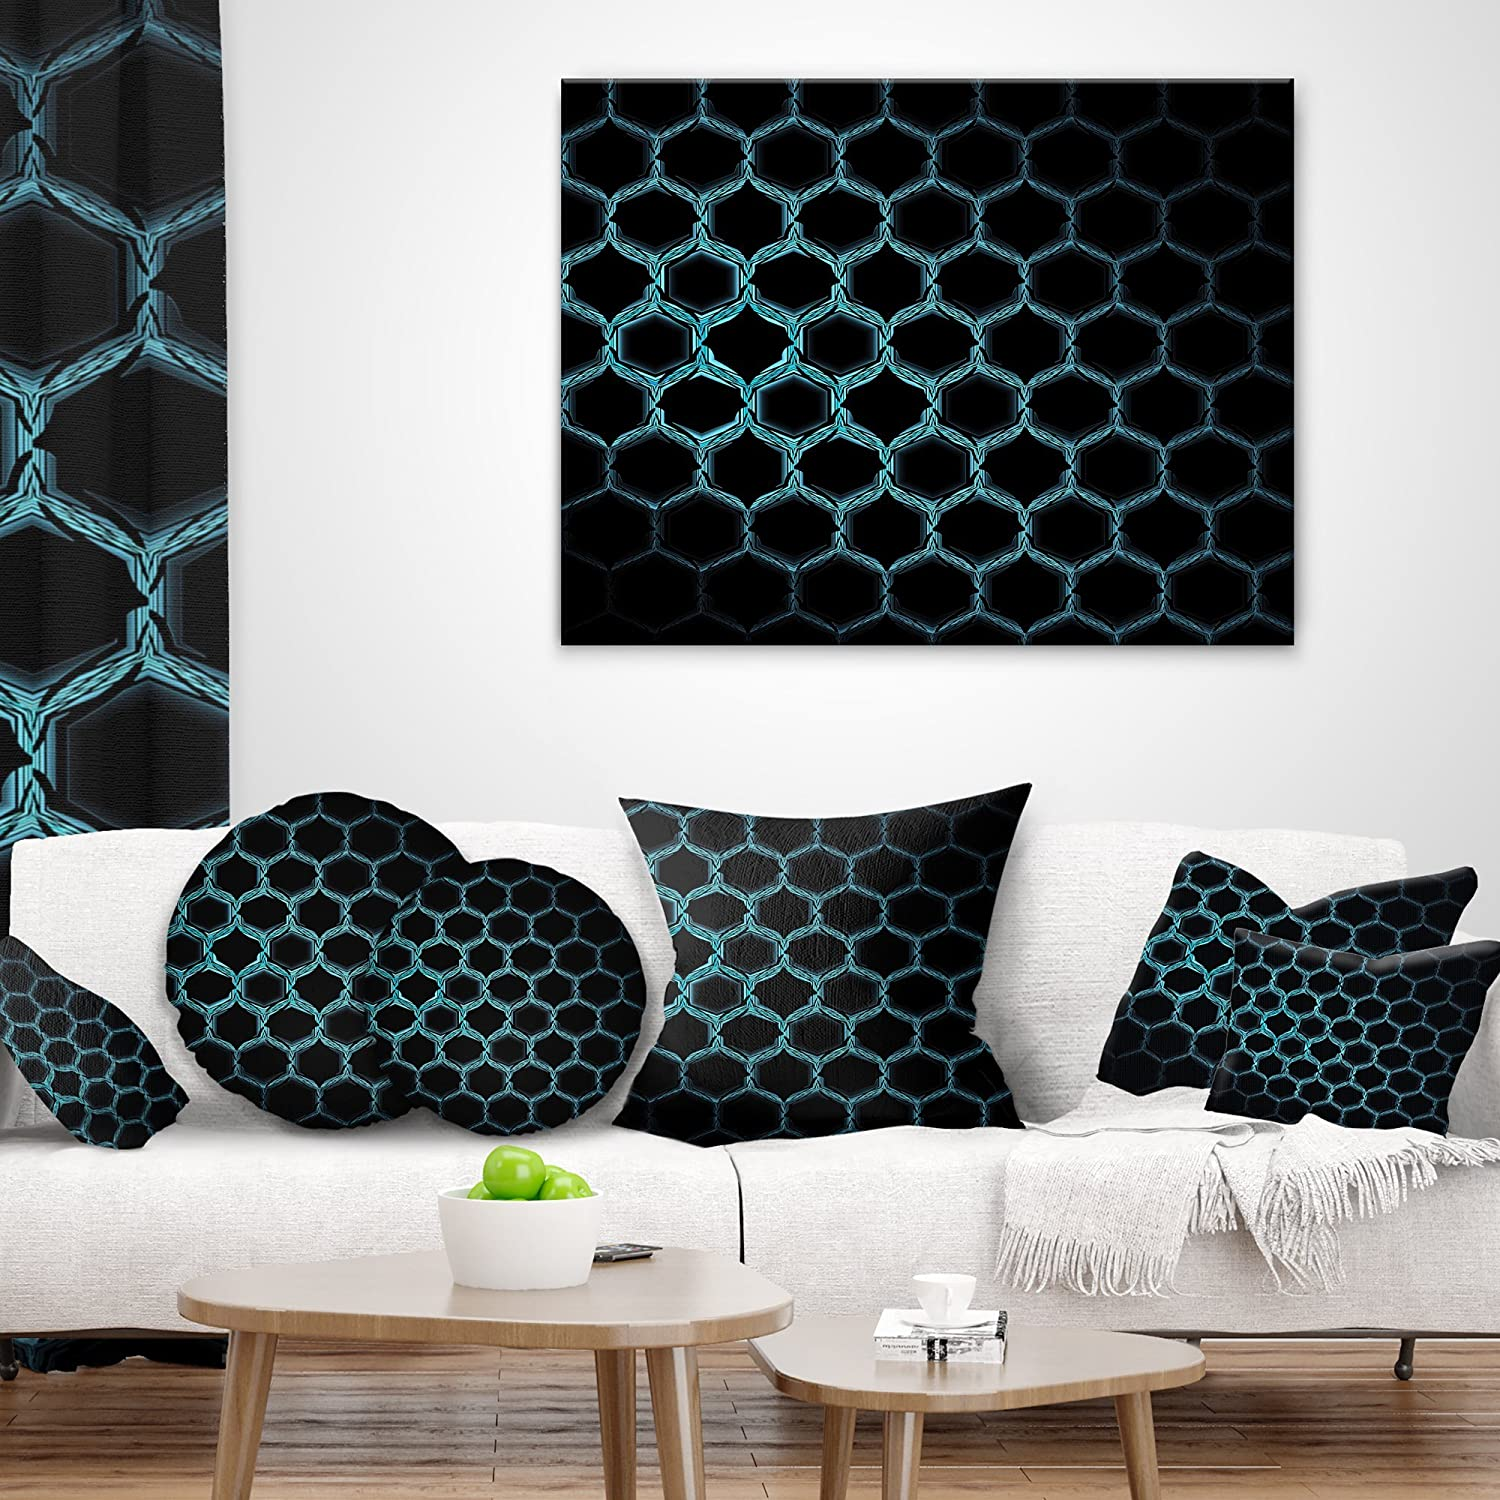 in Designart CU16419-16-16 Honeycomb Fractal Gold Hex Pixel Abstract Cushion Cover for Living Room Sofa Throw Pillow 16 in x 16 in